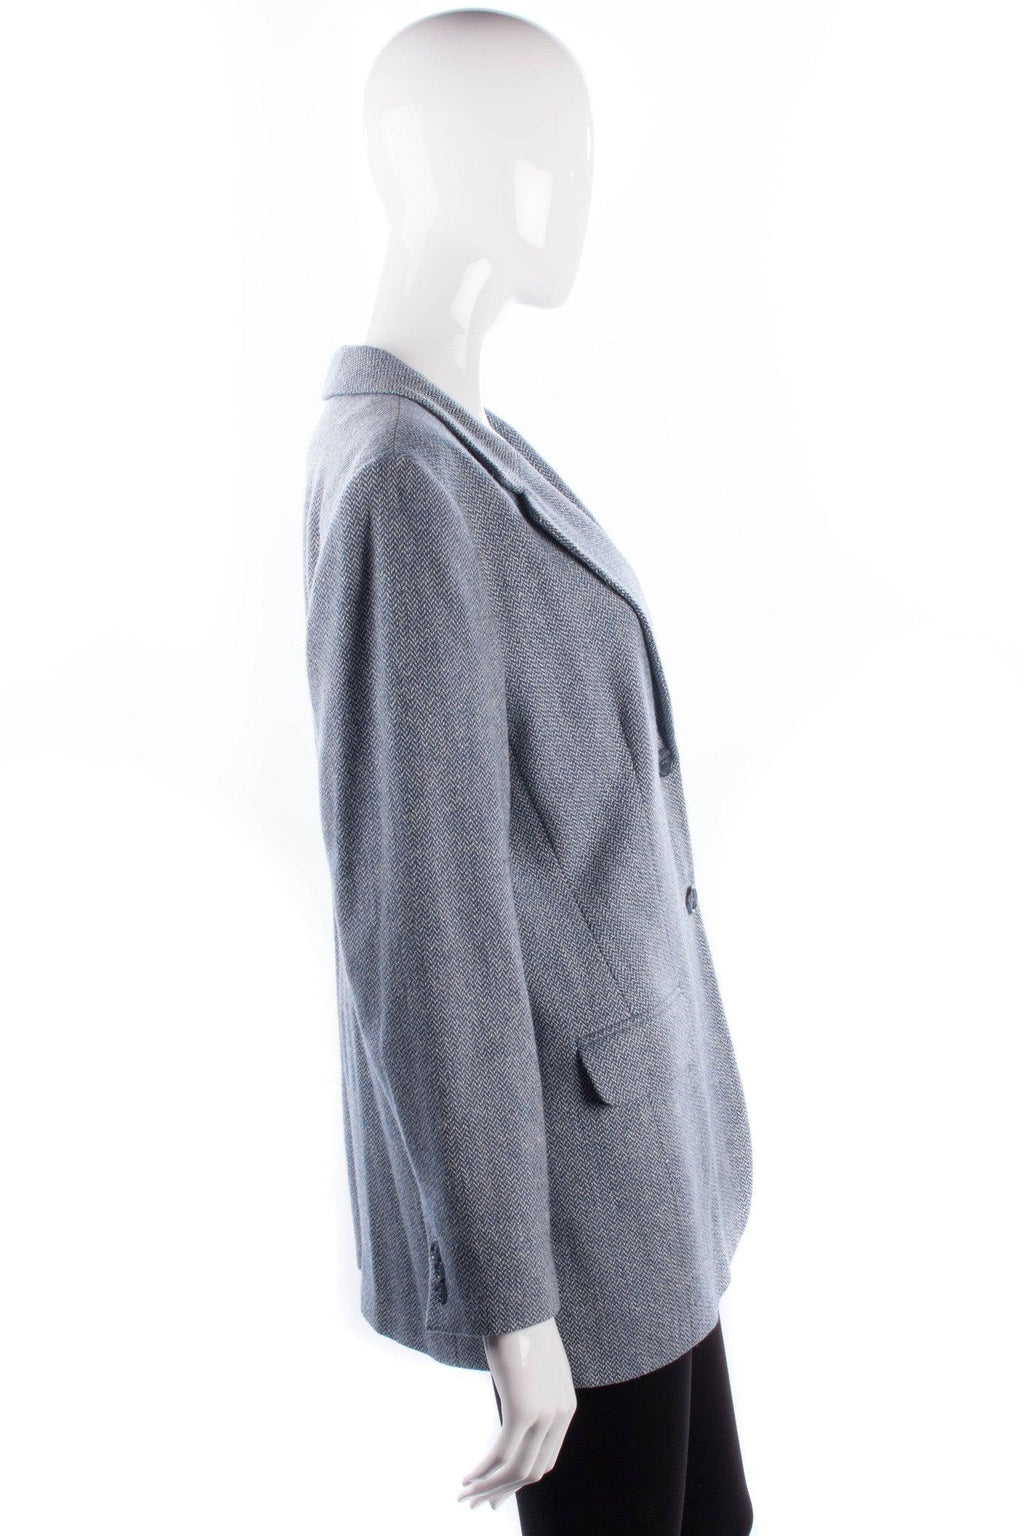 Orvis silk/wool blue, white and grey country jacket size 12